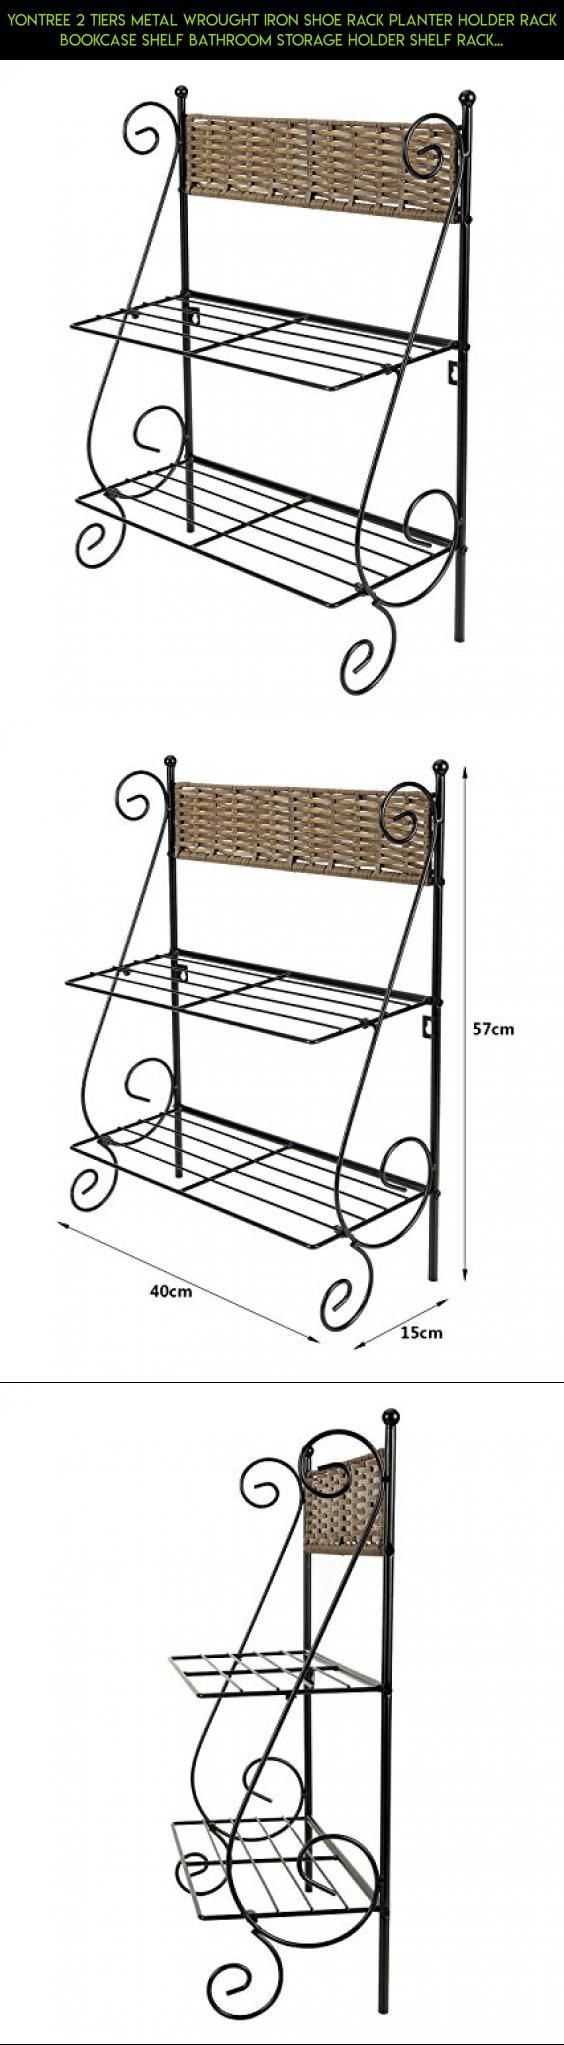 Yontree 2 Tiers Metal Wrought Iron Shoe Rack Planter Holder Rack Bookcase Shelf Bathroom Storage Holder Shelf Rack Black with Little Bamboo Fence Design-15.7x6x22.5 In. #kit #plans #technology #products #camera #gadgets #racing #fpv #shelves #shopping #storage #parts #drone #6 #tech